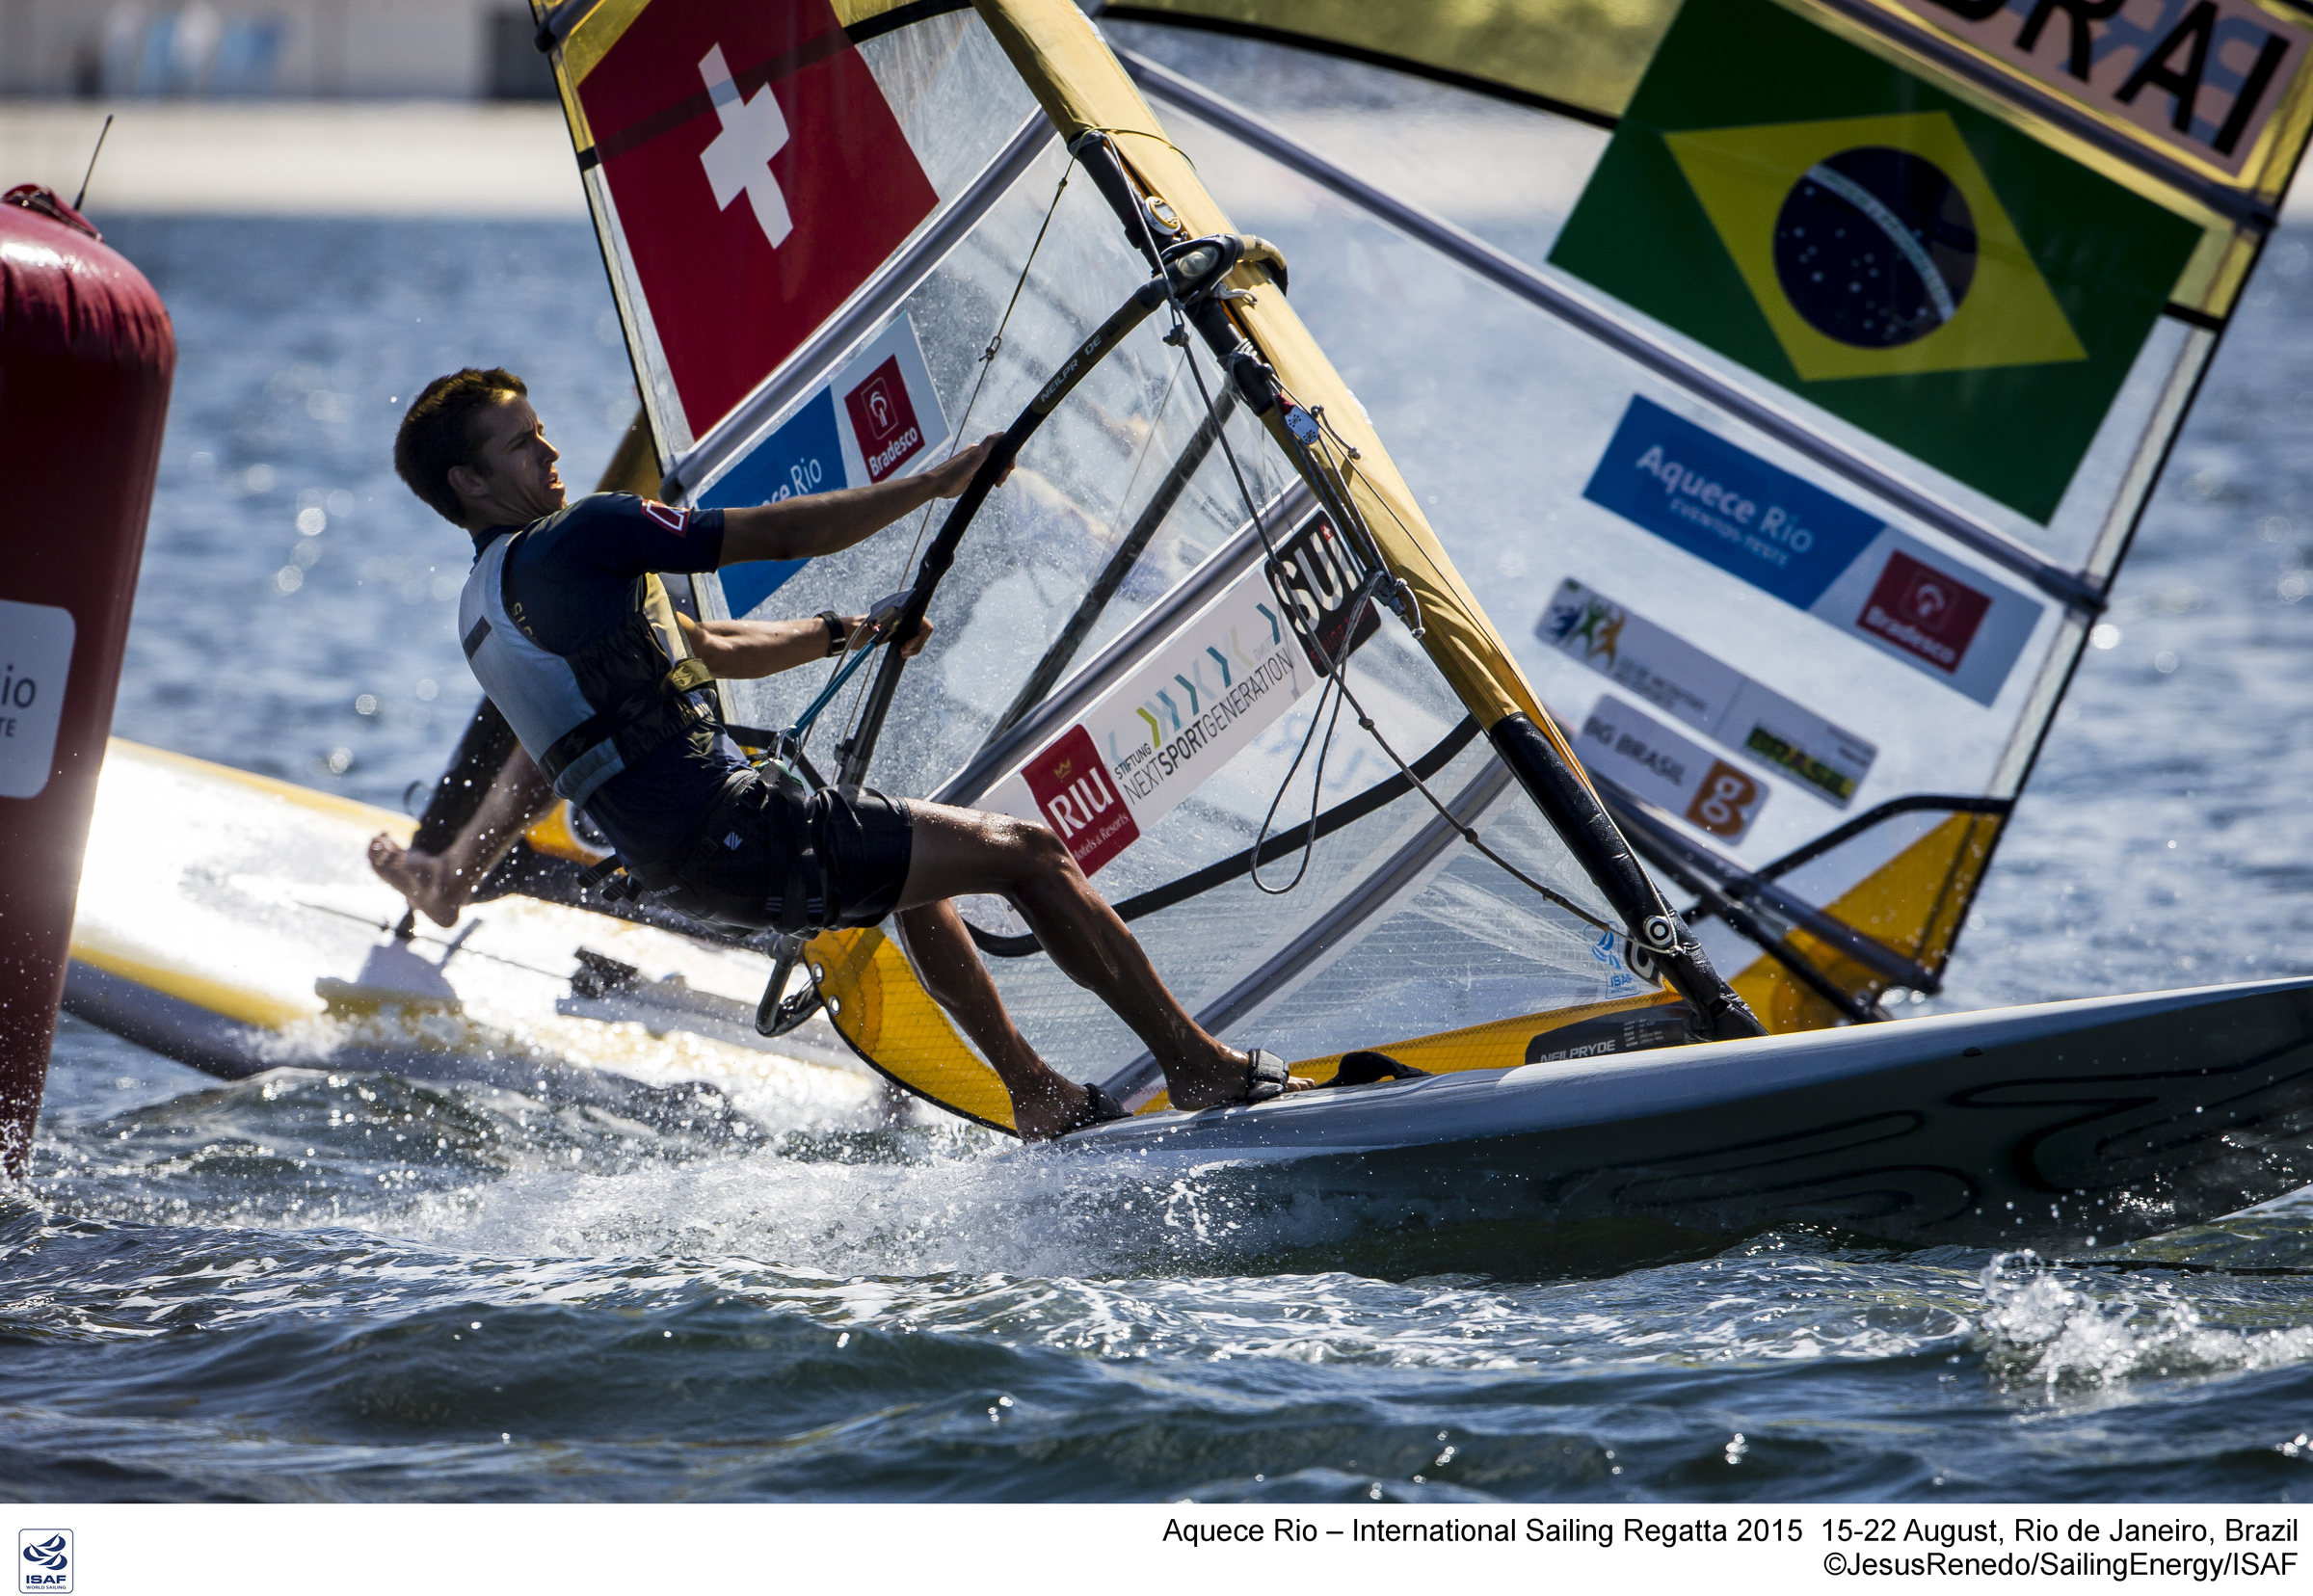 Aquece Rio – International Sailing Regatta 2015 is the second sailing test event in preparation for the Rio 2016 Olympic Sailing Competition. Held out of Marina da Gloria from 15-22 August, the Olympic test event welcomes more than 330 sailors from 52 nations in Rio de Janeiro, Brazil.  Credit Jesus Renedo/Sailing Energy